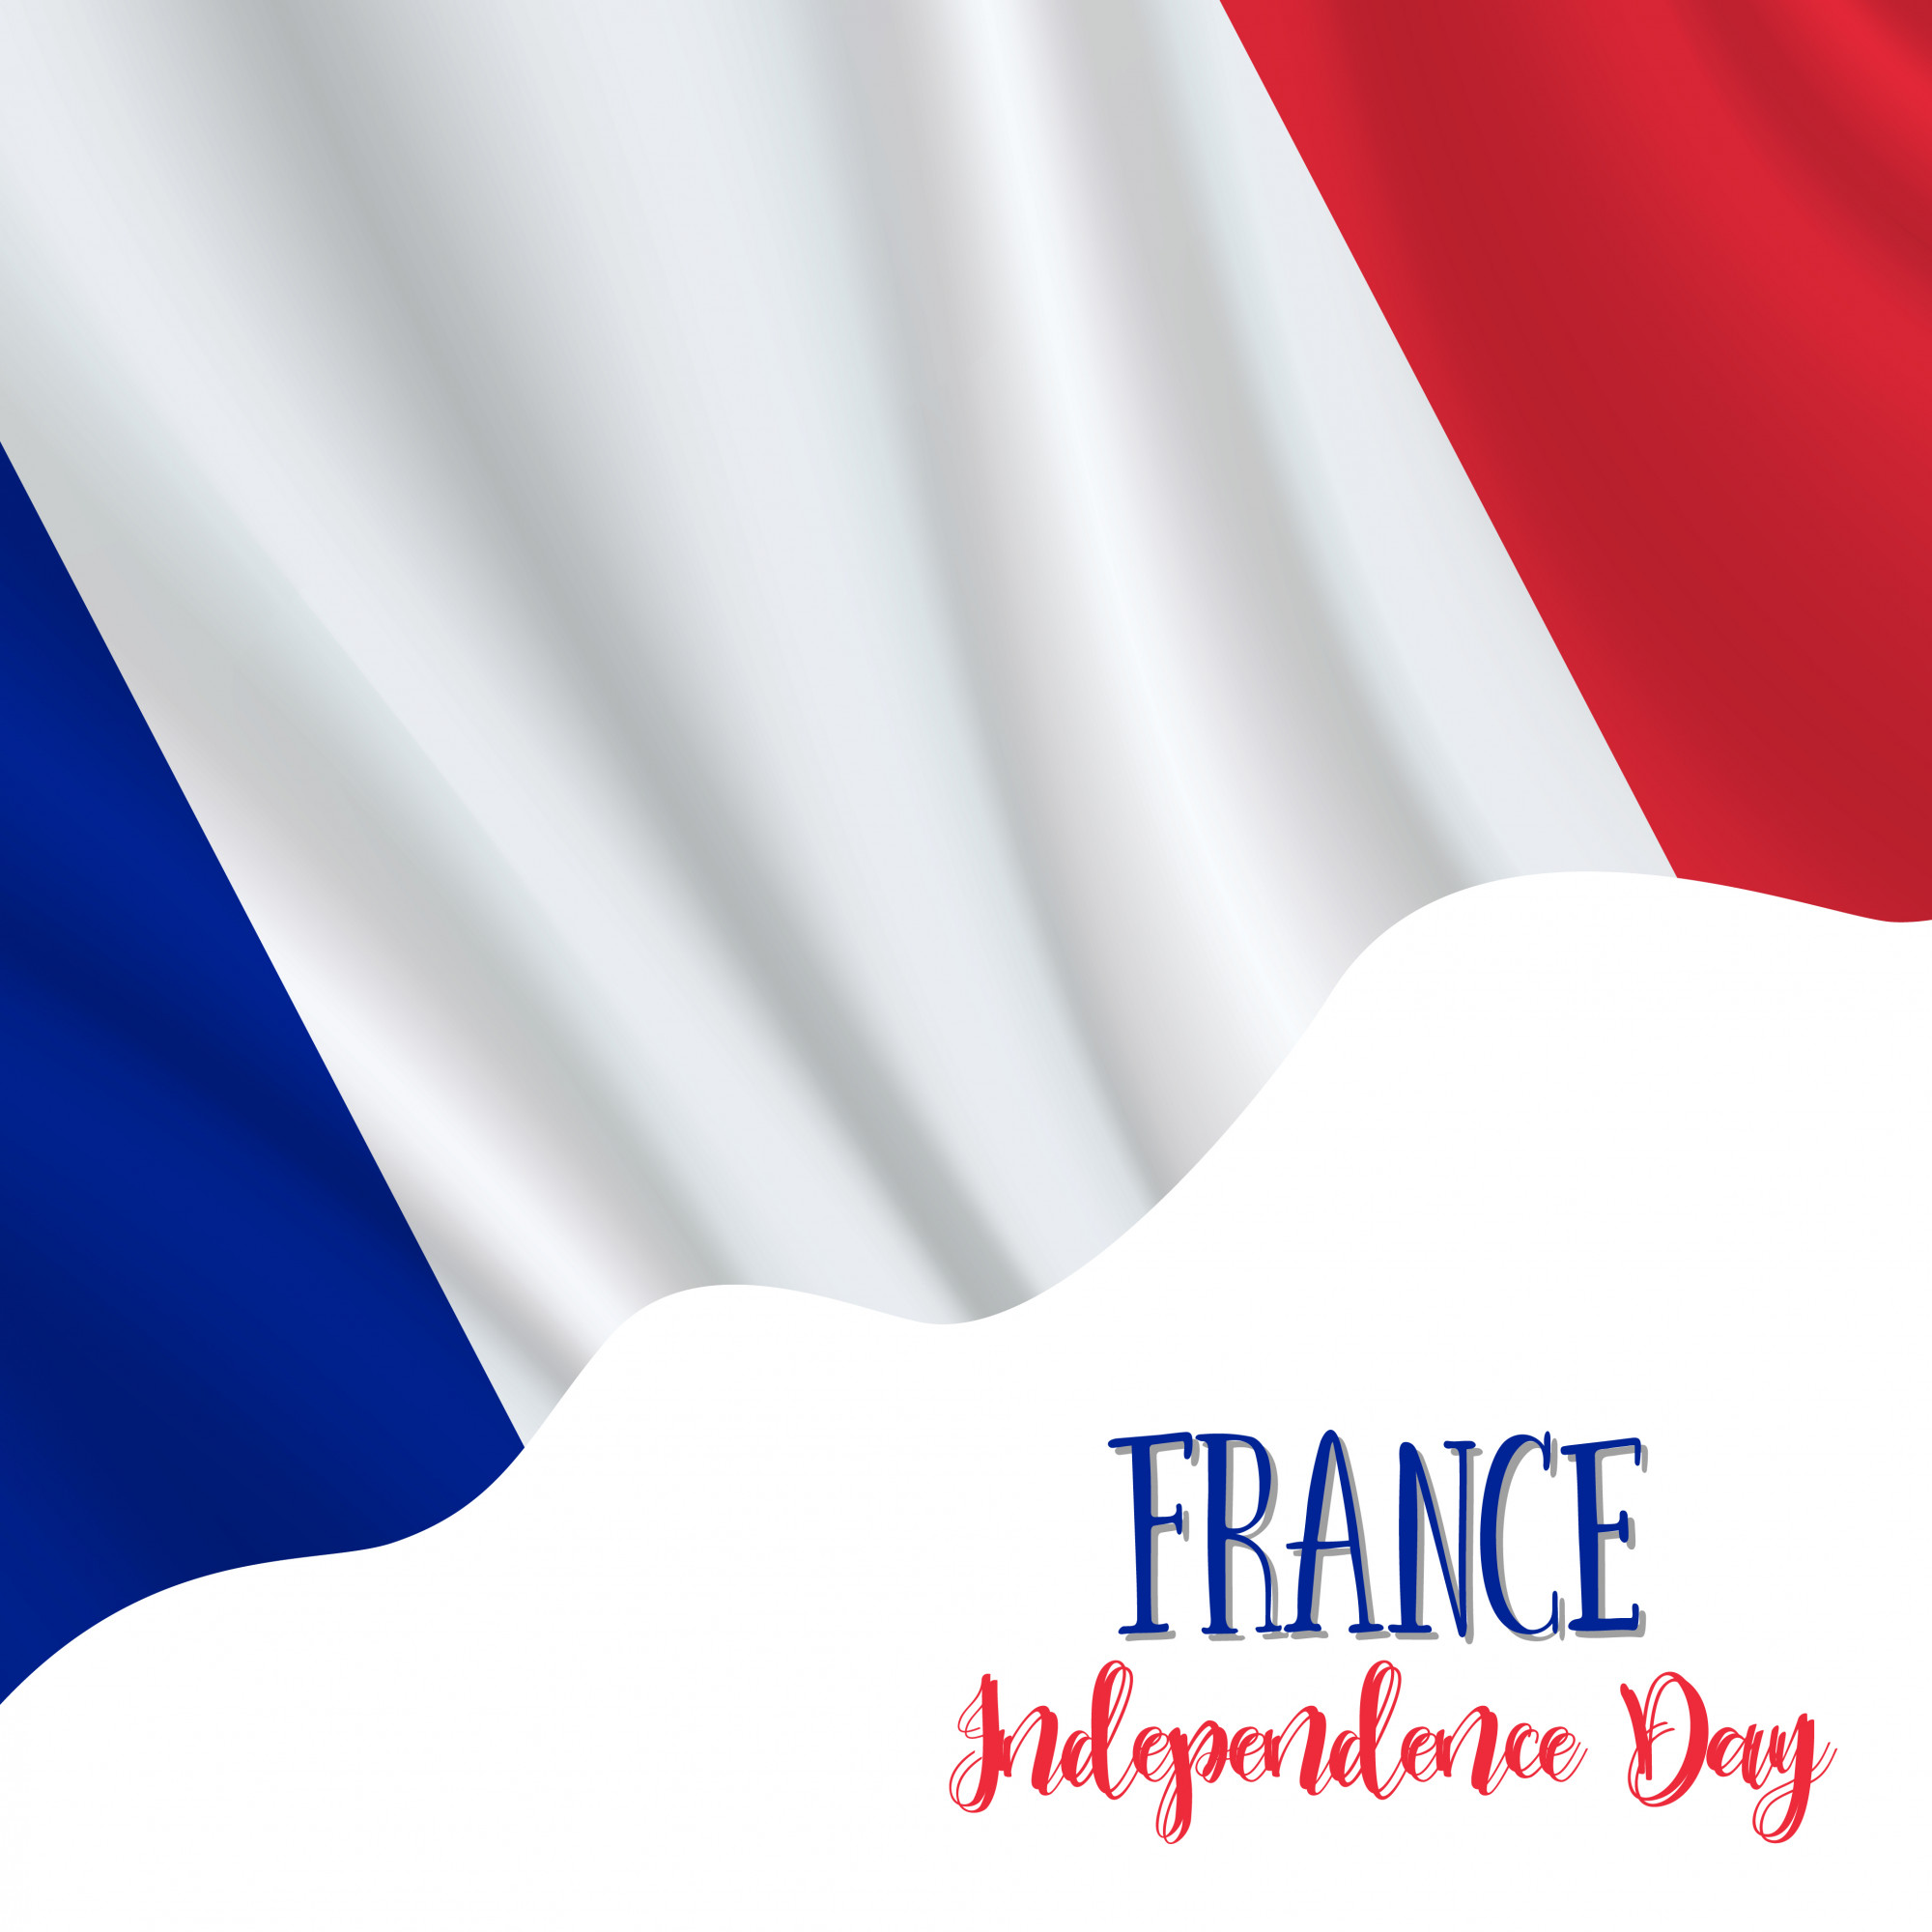 France Independence Day background